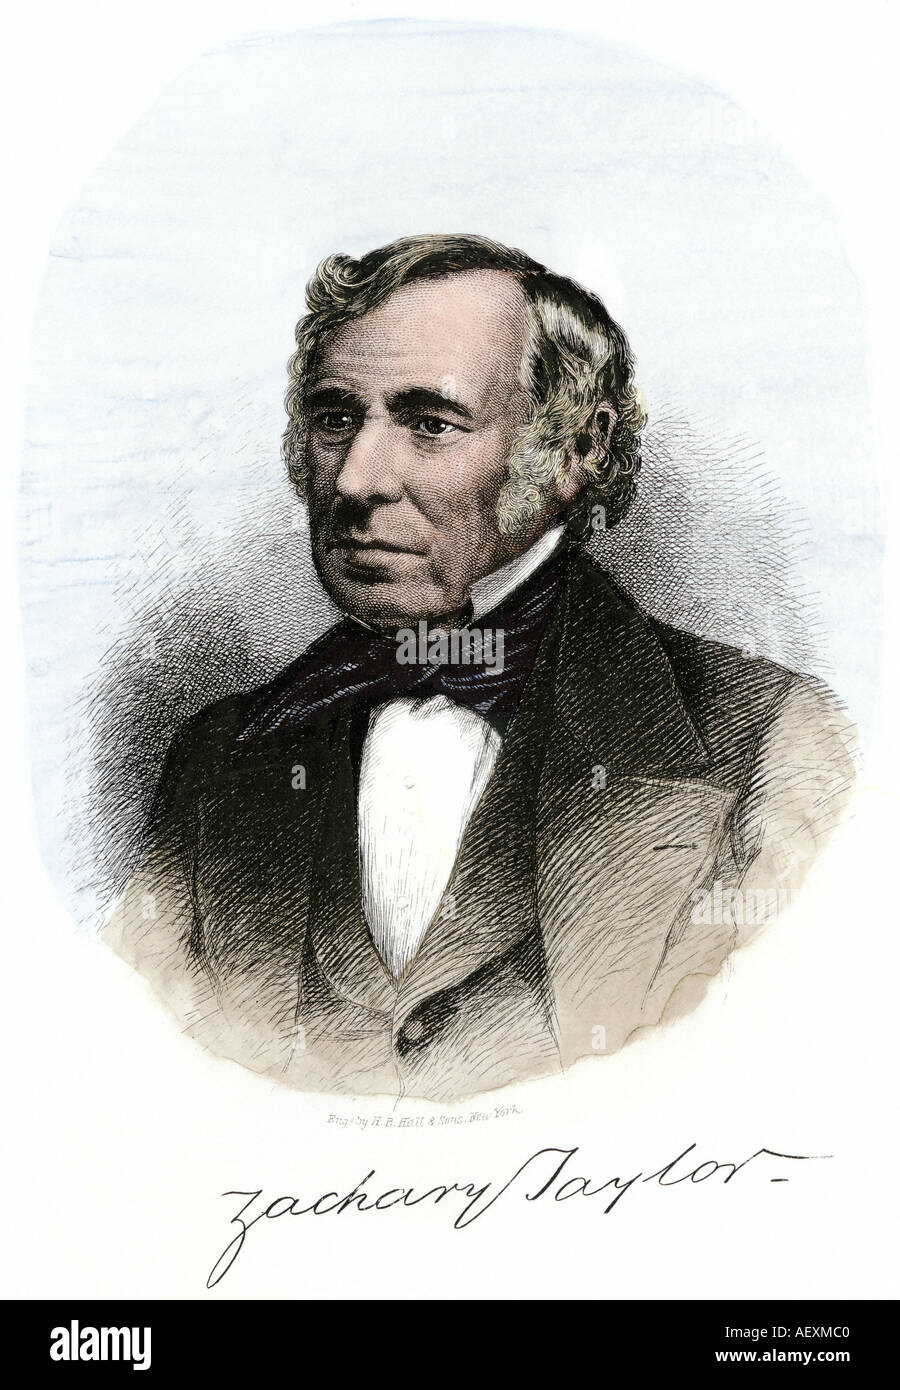 President Zachary Taylor with autograph. Hand-colored woodcut - Stock Image